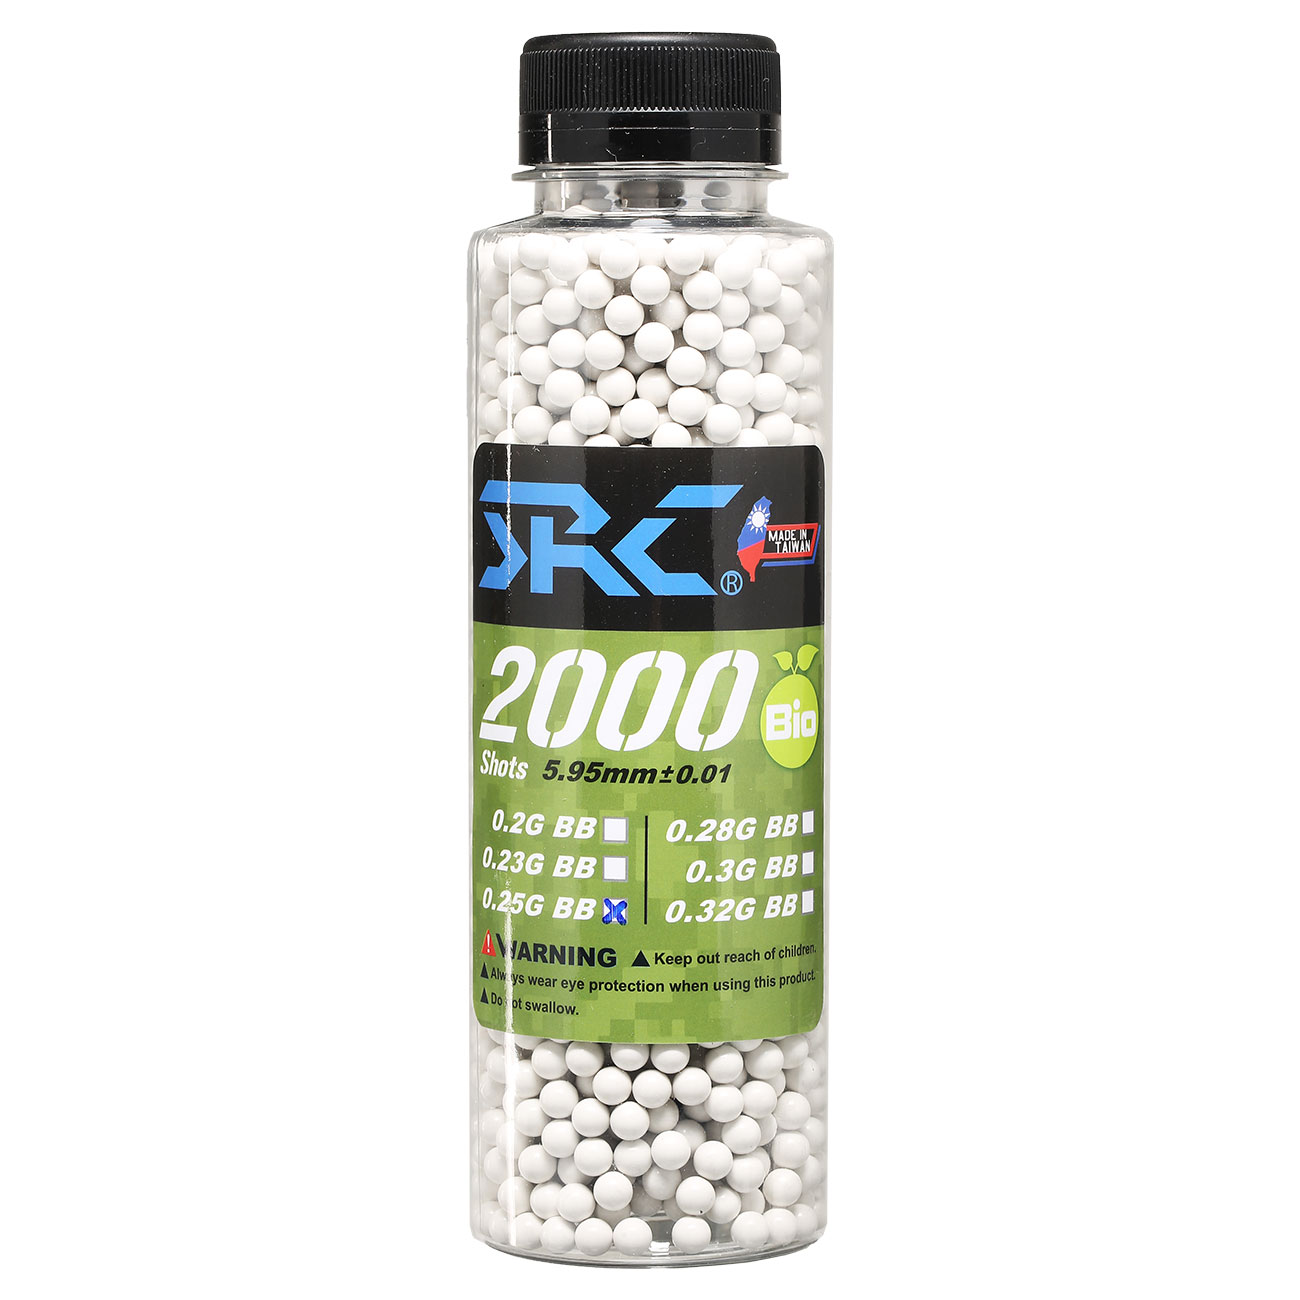 SRC High Precision Perfect Bio BBs 0,25g 2.000er Flasche weiss 0